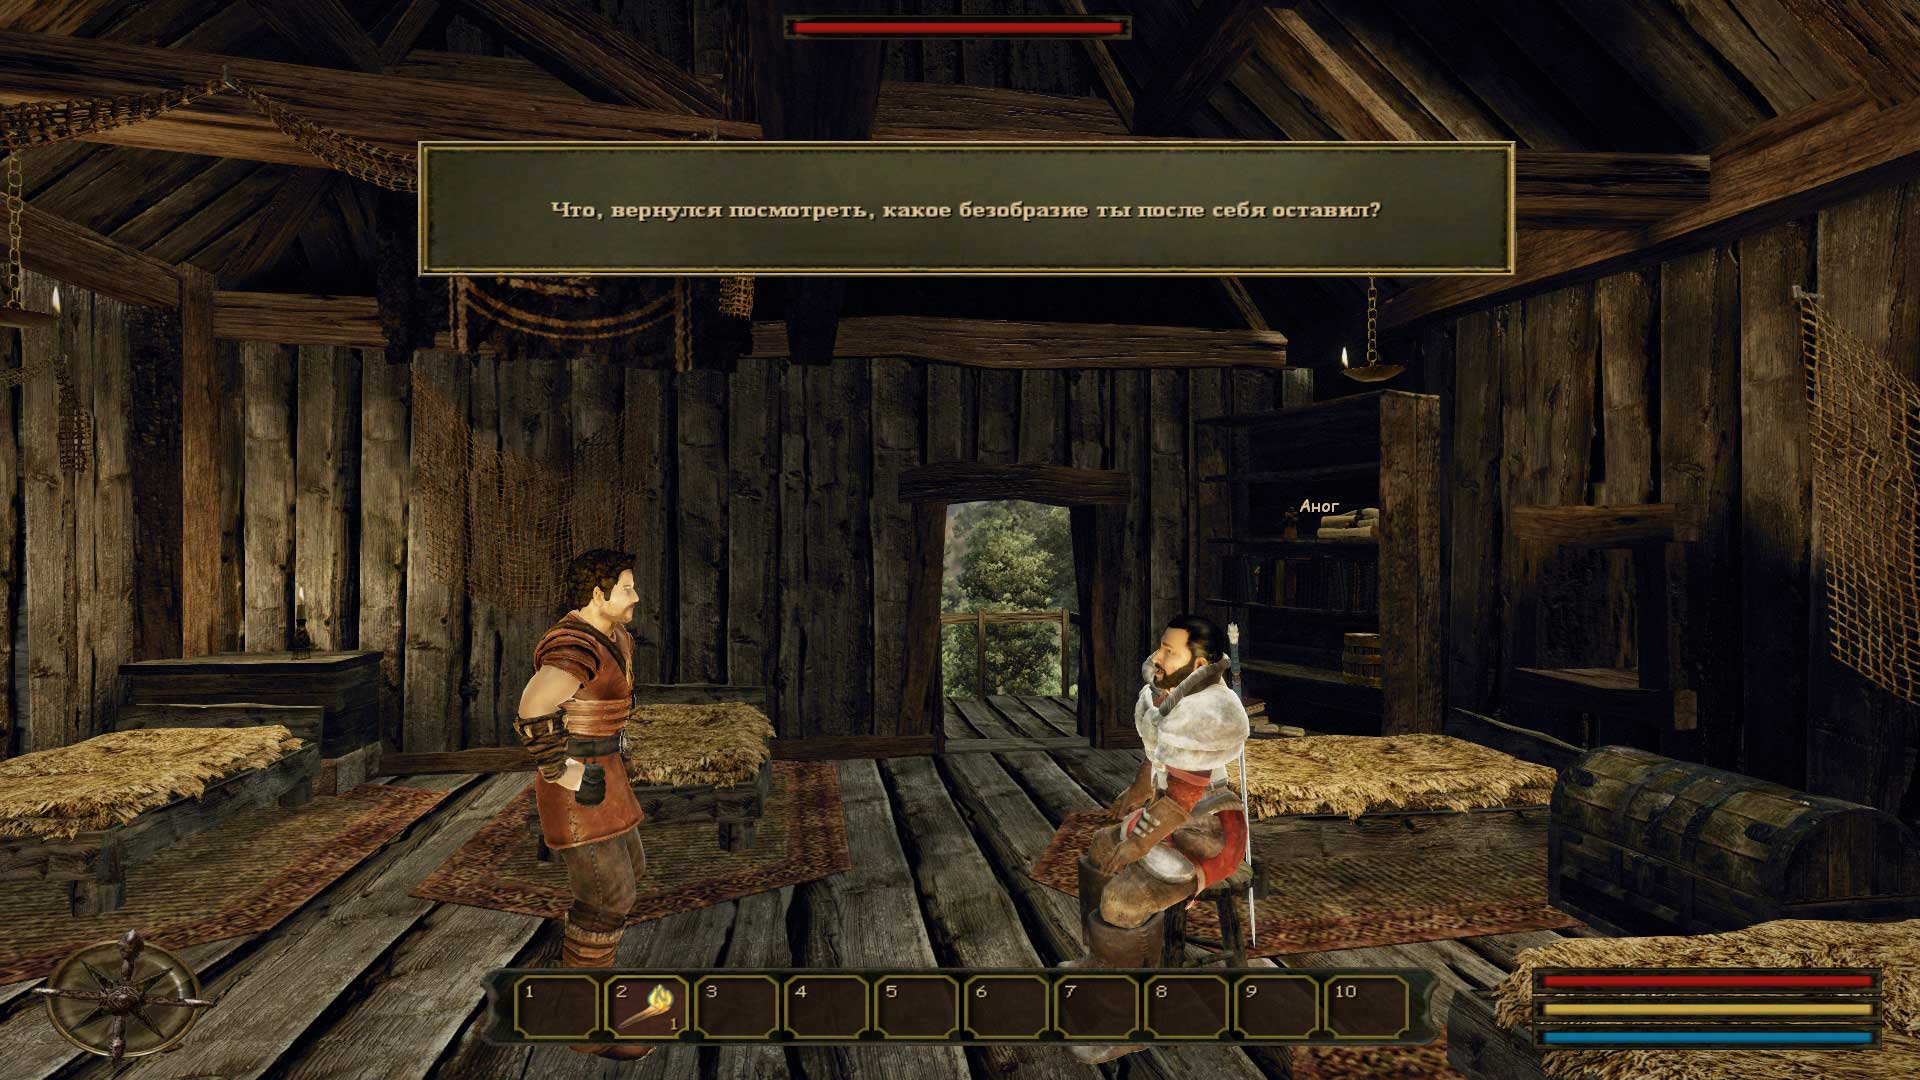 Screenshot for the game Готика - Антология / Gothic - Anthology (2001-2011) PC | RePack от R.G. Механики